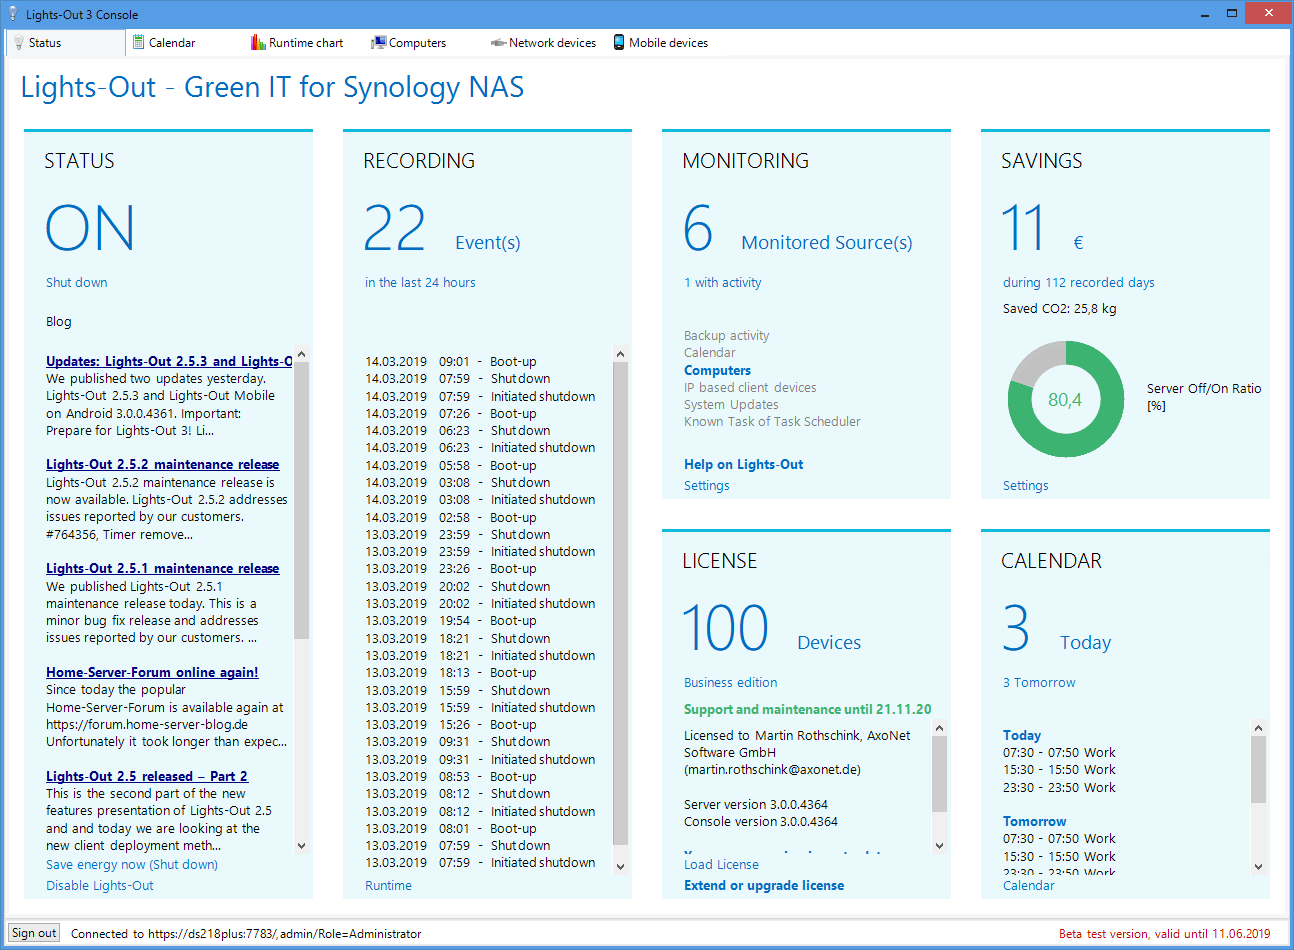 Lights-Out 3 connected to a Synology NAS